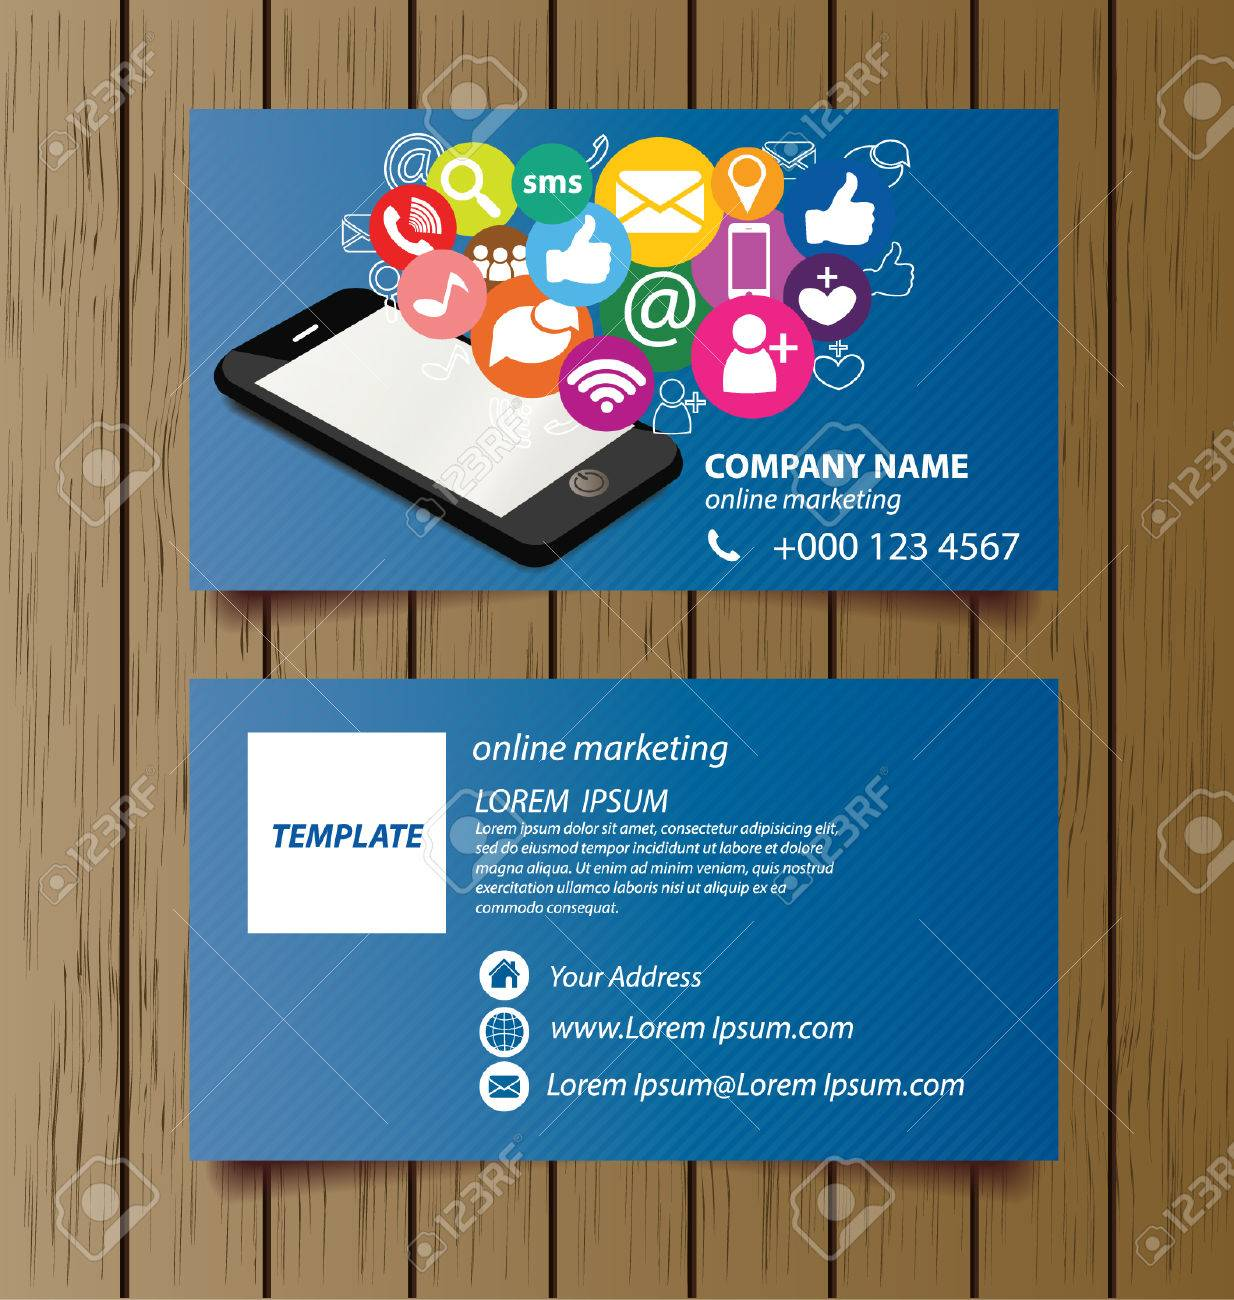 Business Card Template For Online Marketing Vector Royalty Free Cliparts Vectors And Stock Illustration Image 28388475